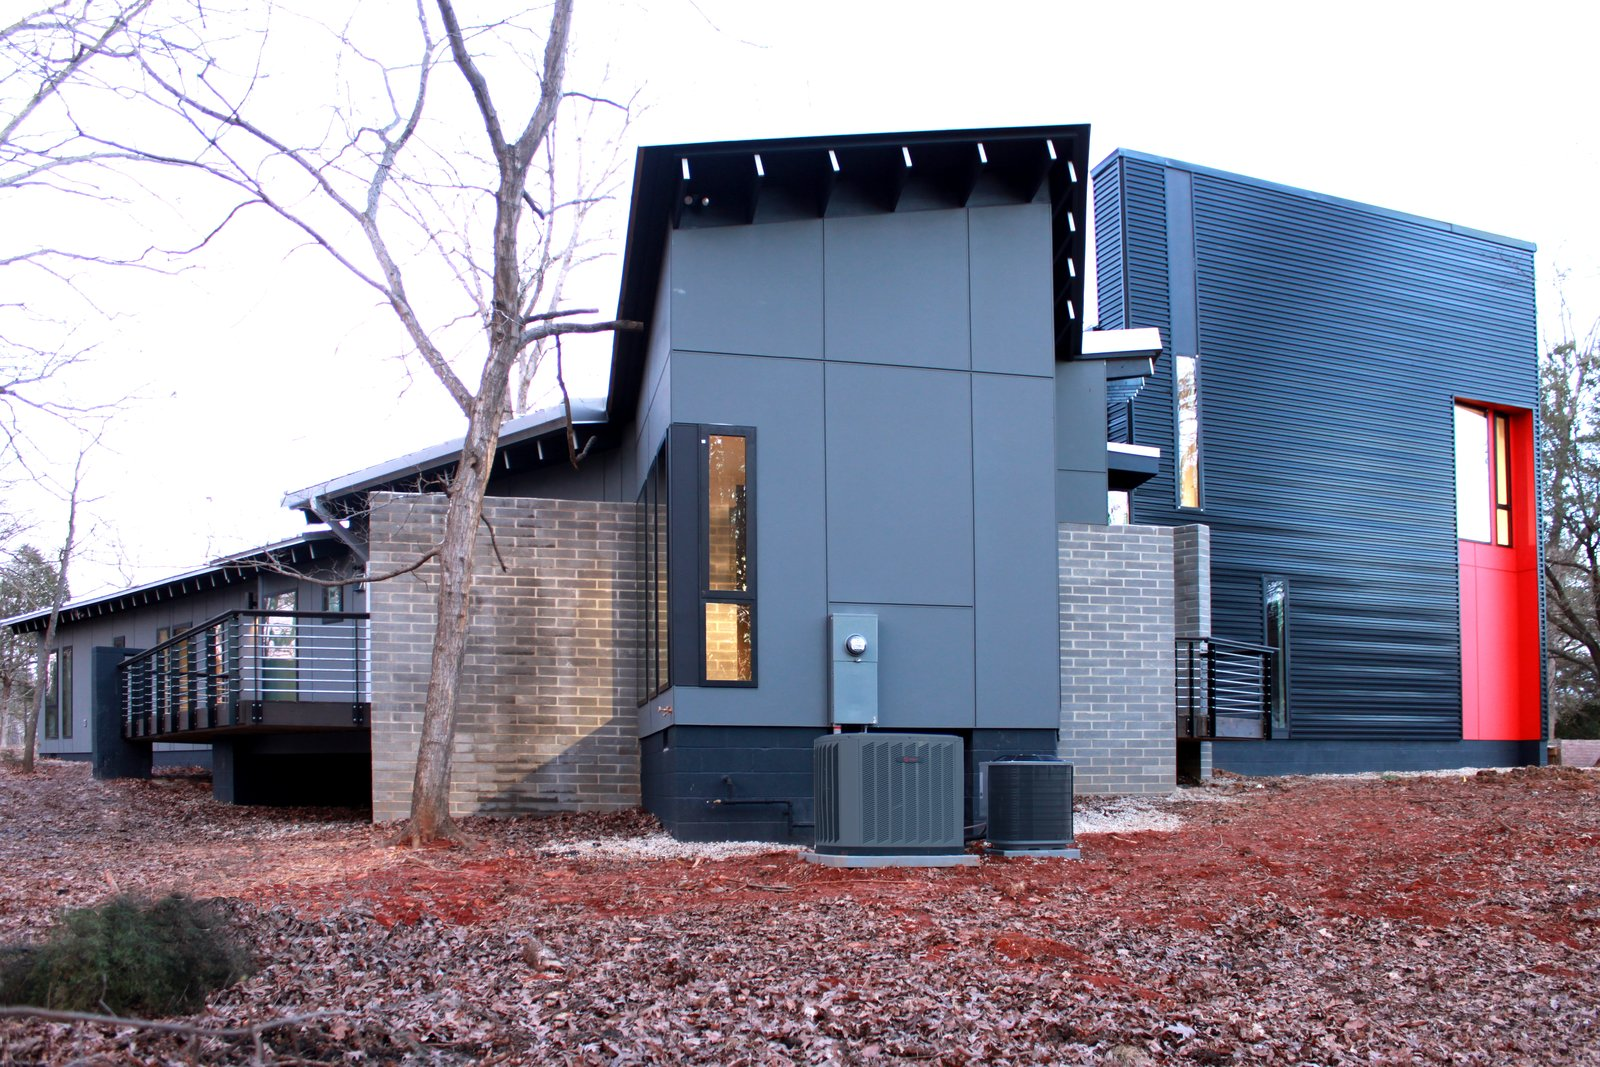 Exterior, Flat RoofLine, Brick Siding Material, Metal Siding Material, Concrete Siding Material, Metal Roof Material, Shed RoofLine, and House Building Type Masonry walls slice through the home and structure the spaces.  The Woung House by Toby Witte